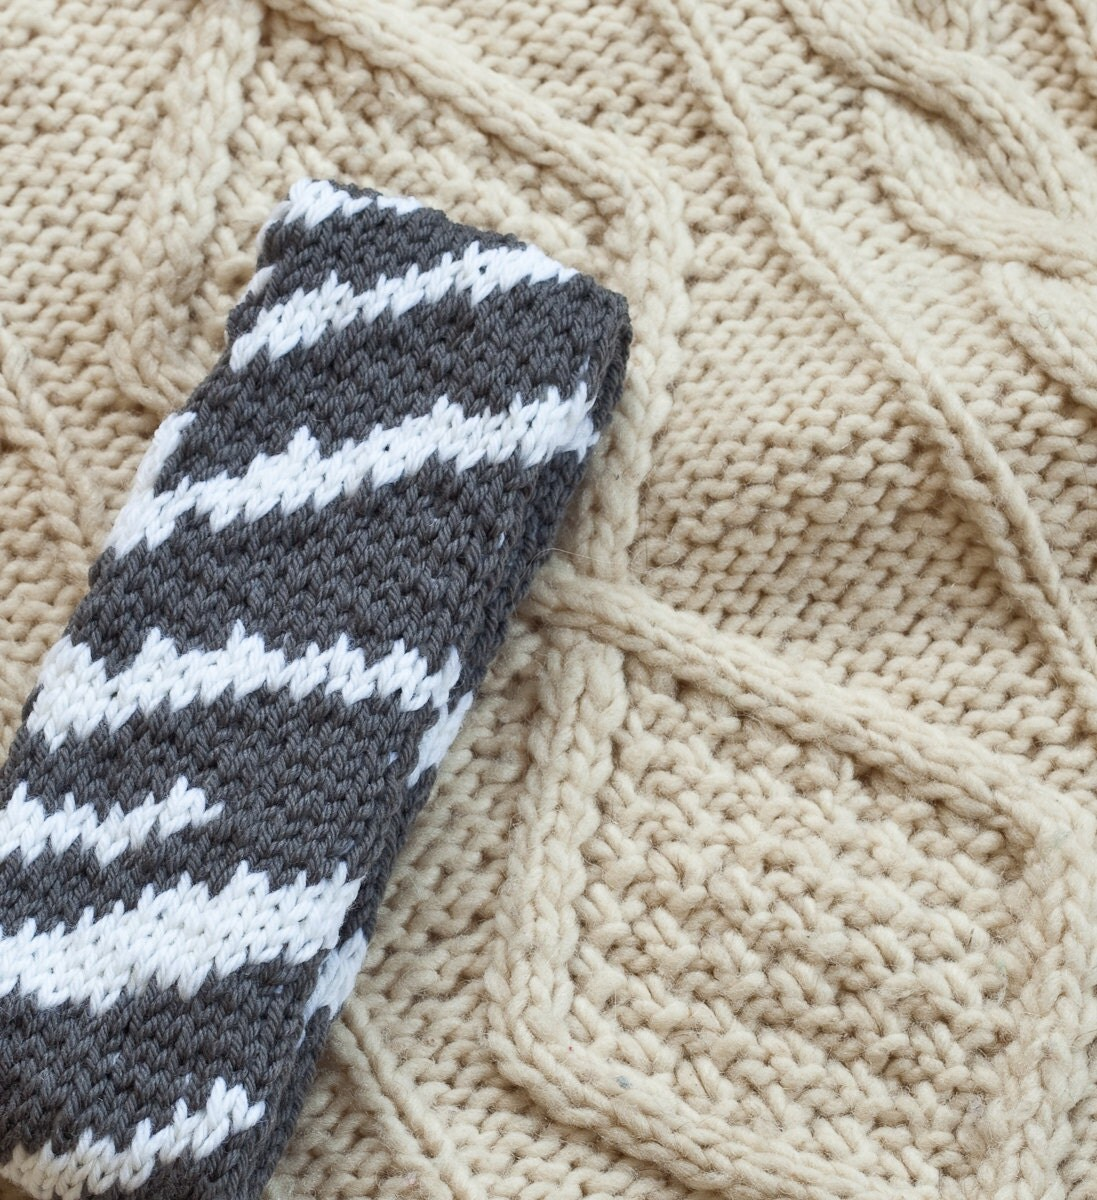 Zebra Print Knitting Pattern : Knitting pattern zebra stripe headband from